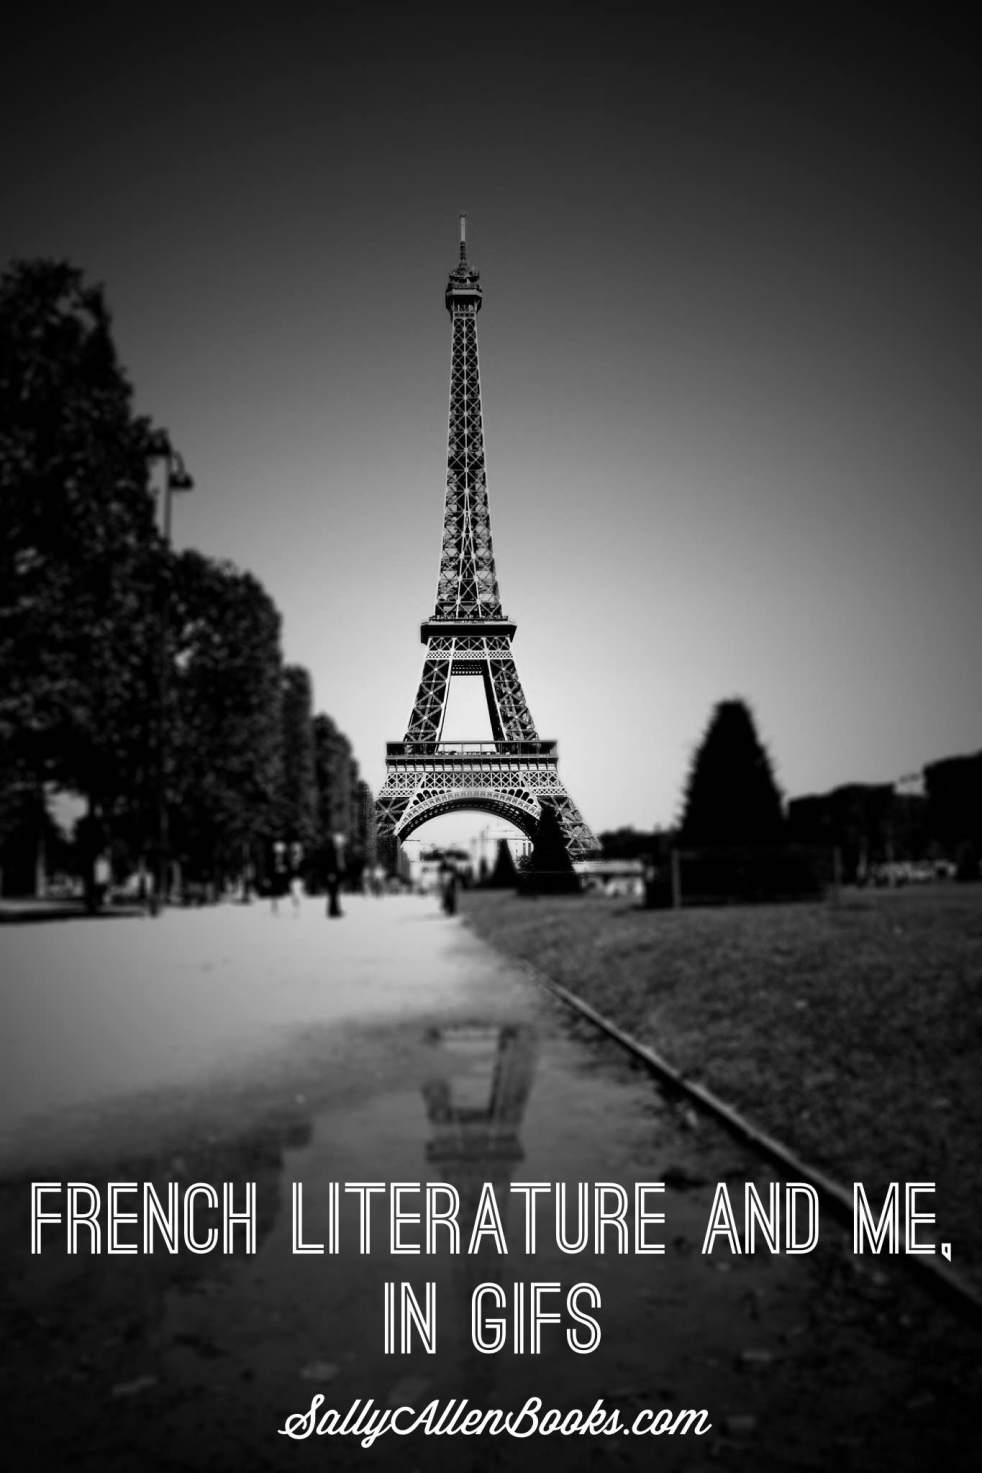 Reading Nina George's The Little Paris Bookshop earlier this month got me thinking about my relationship with French literature. Nothing distills complex emotional responses quite like a GIF...